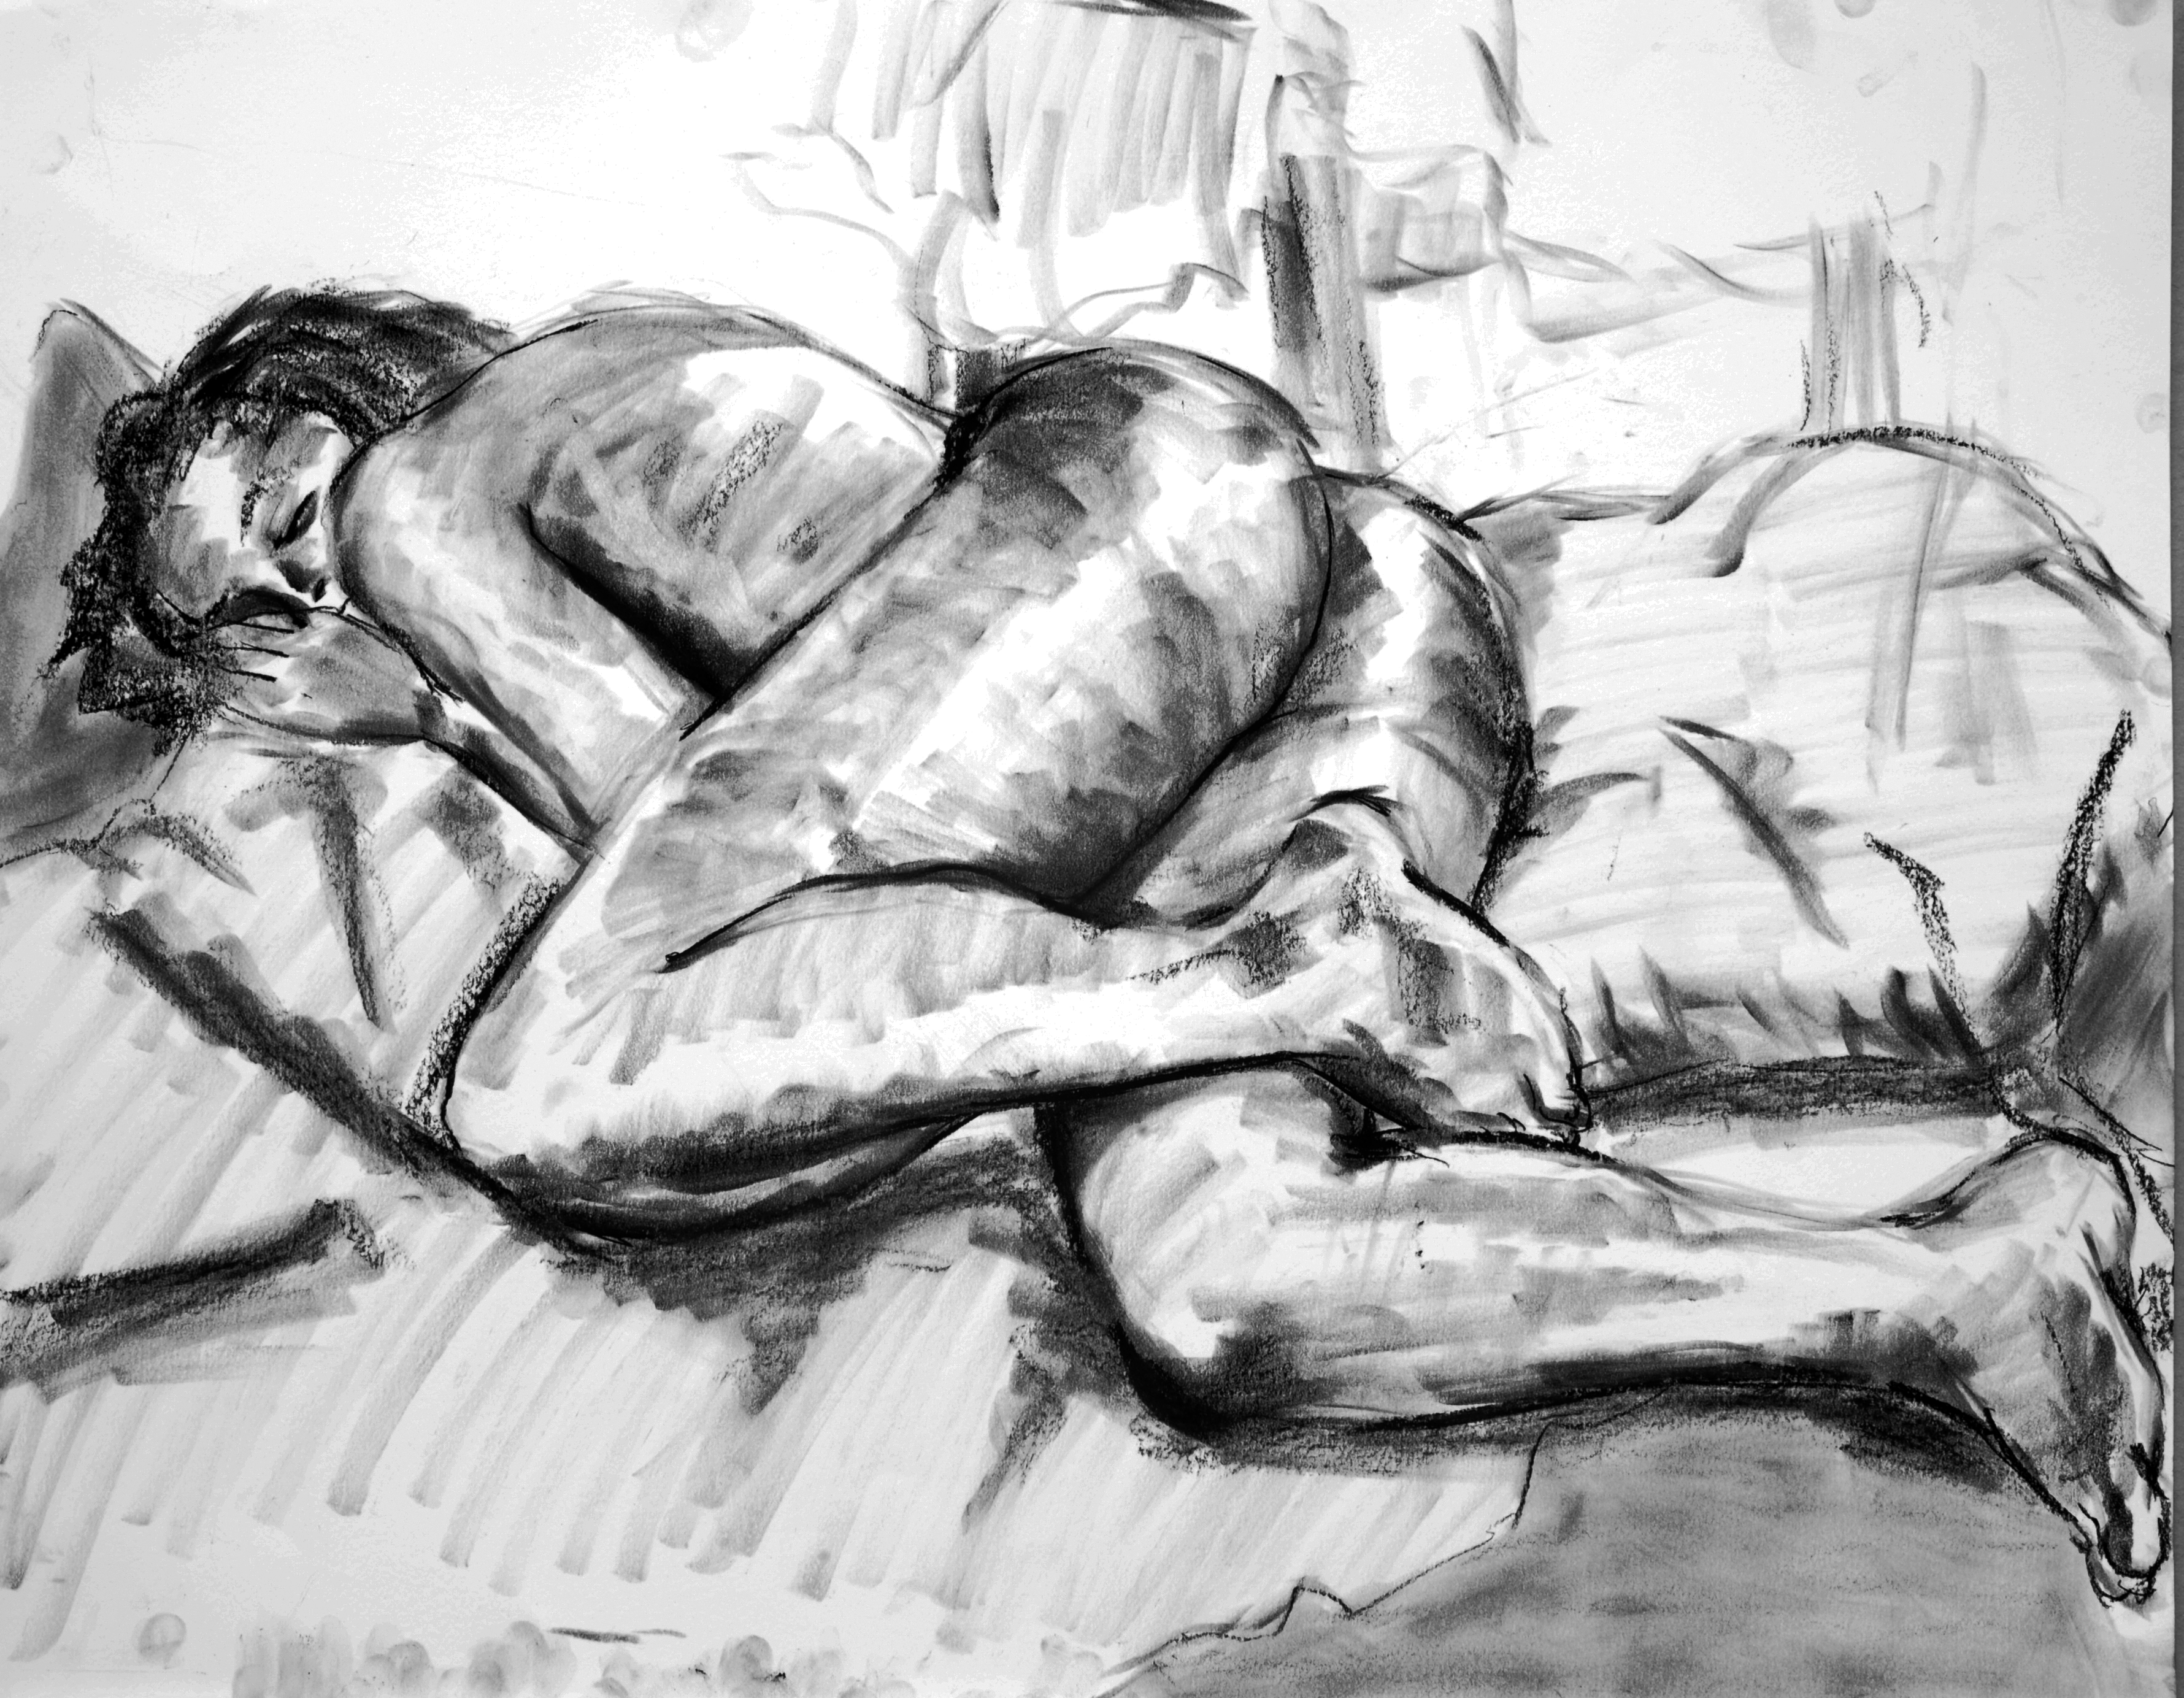 Another Reclining Nude